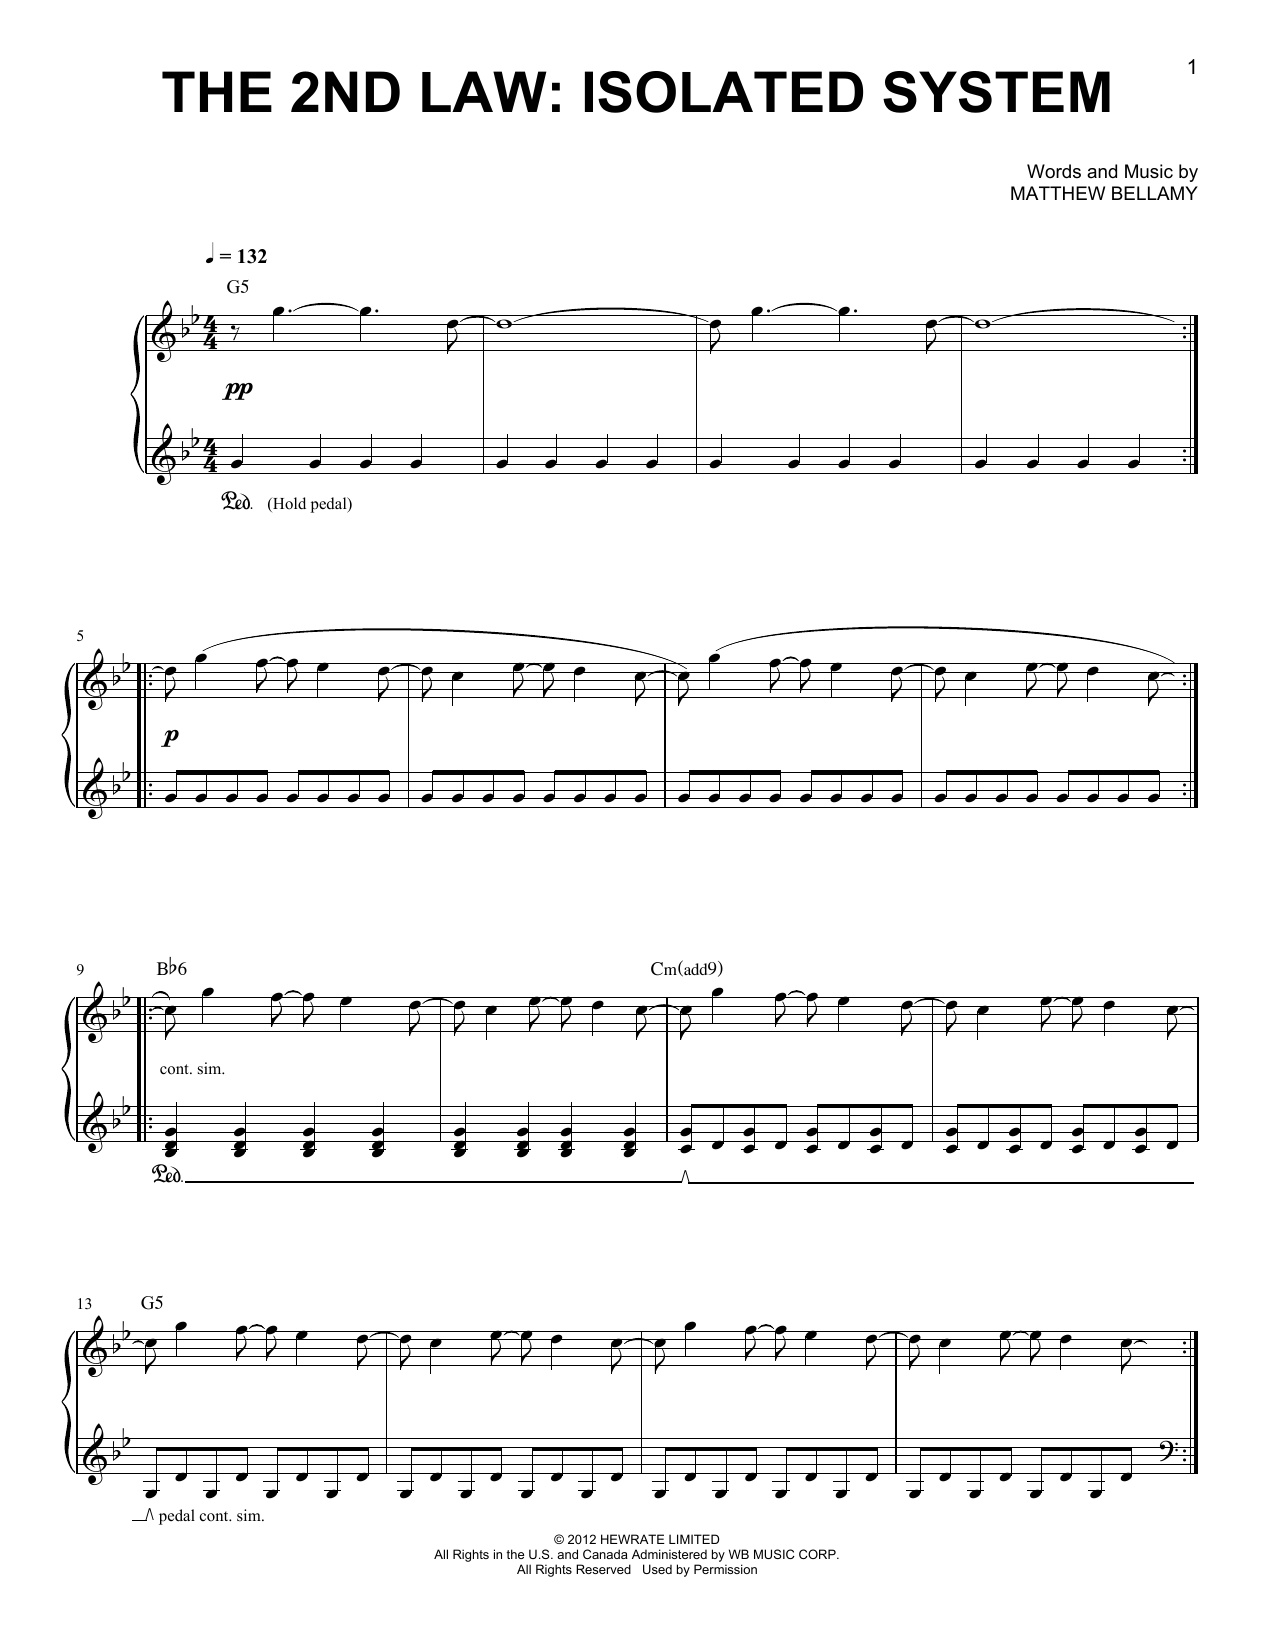 The 2nd Law: Isolated System | Sheet Music Direct